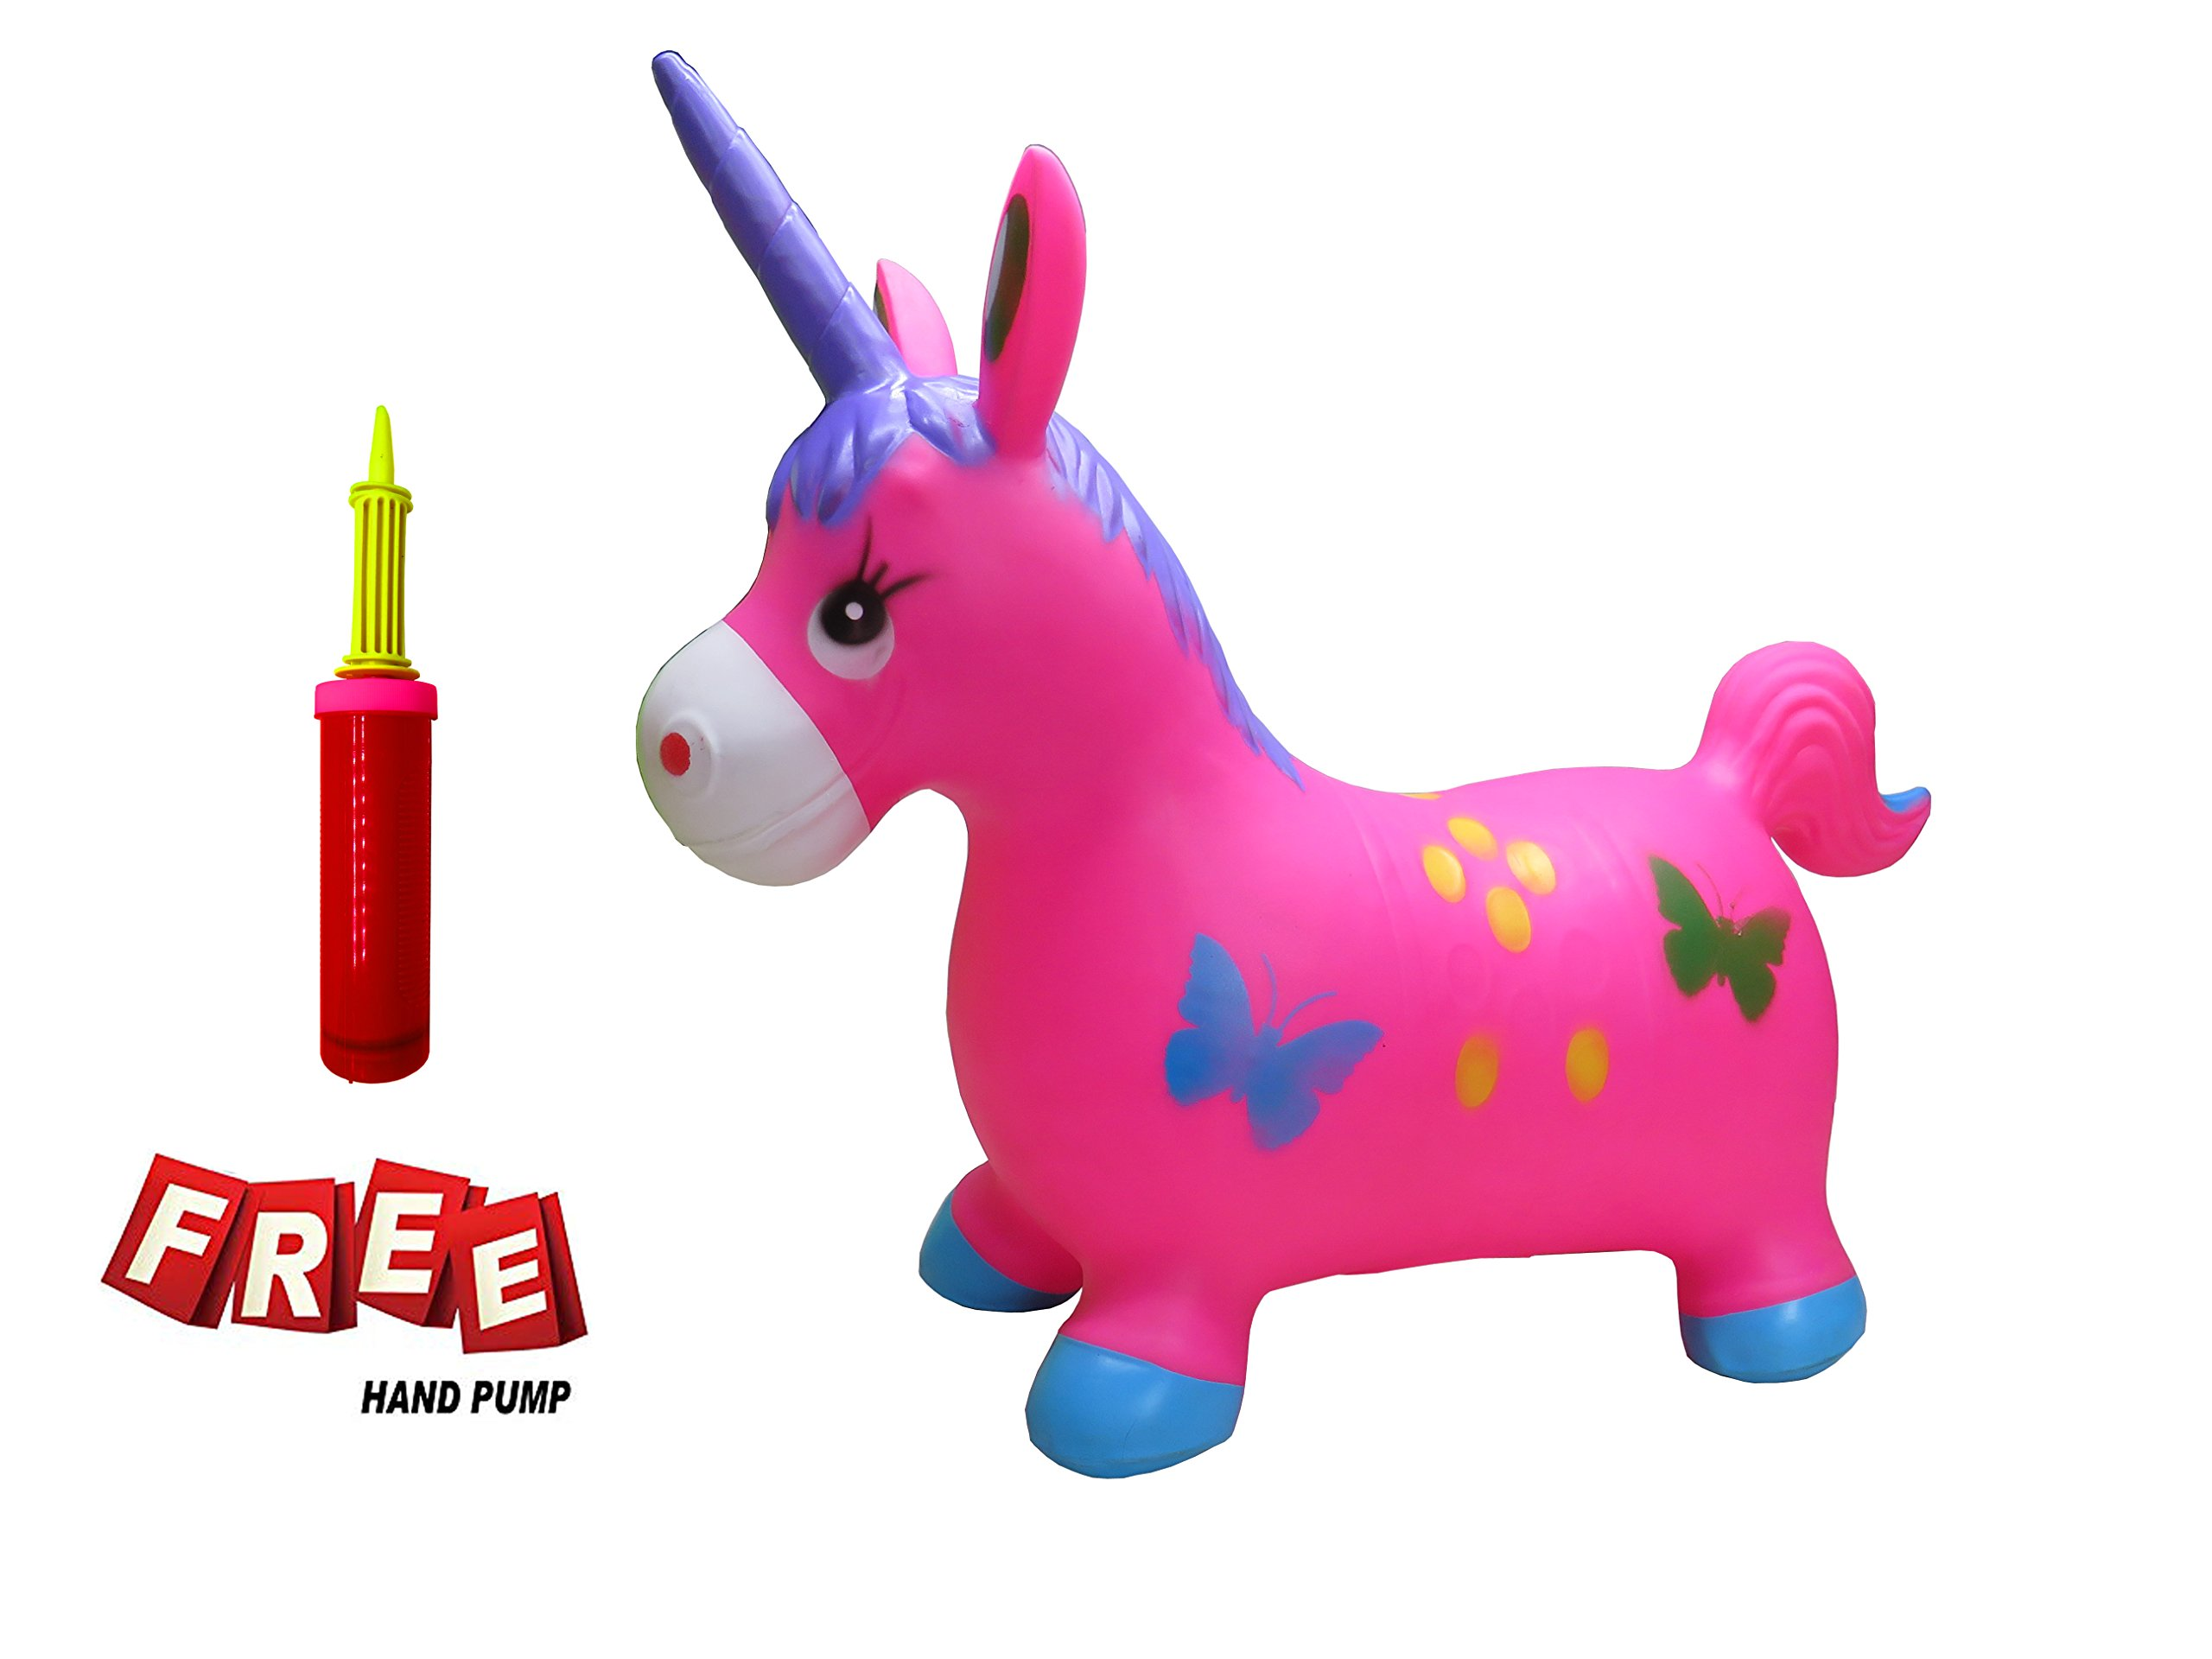 Welliboom Unicorn Hopper Kit, Pump Included, Inflatable Jumping Unicorn, Space Hopper, Ride-on Bouncy Unicorn Horse Hopper, Sit and Bounce, 3-Colors Available (Rose) by Welliboom